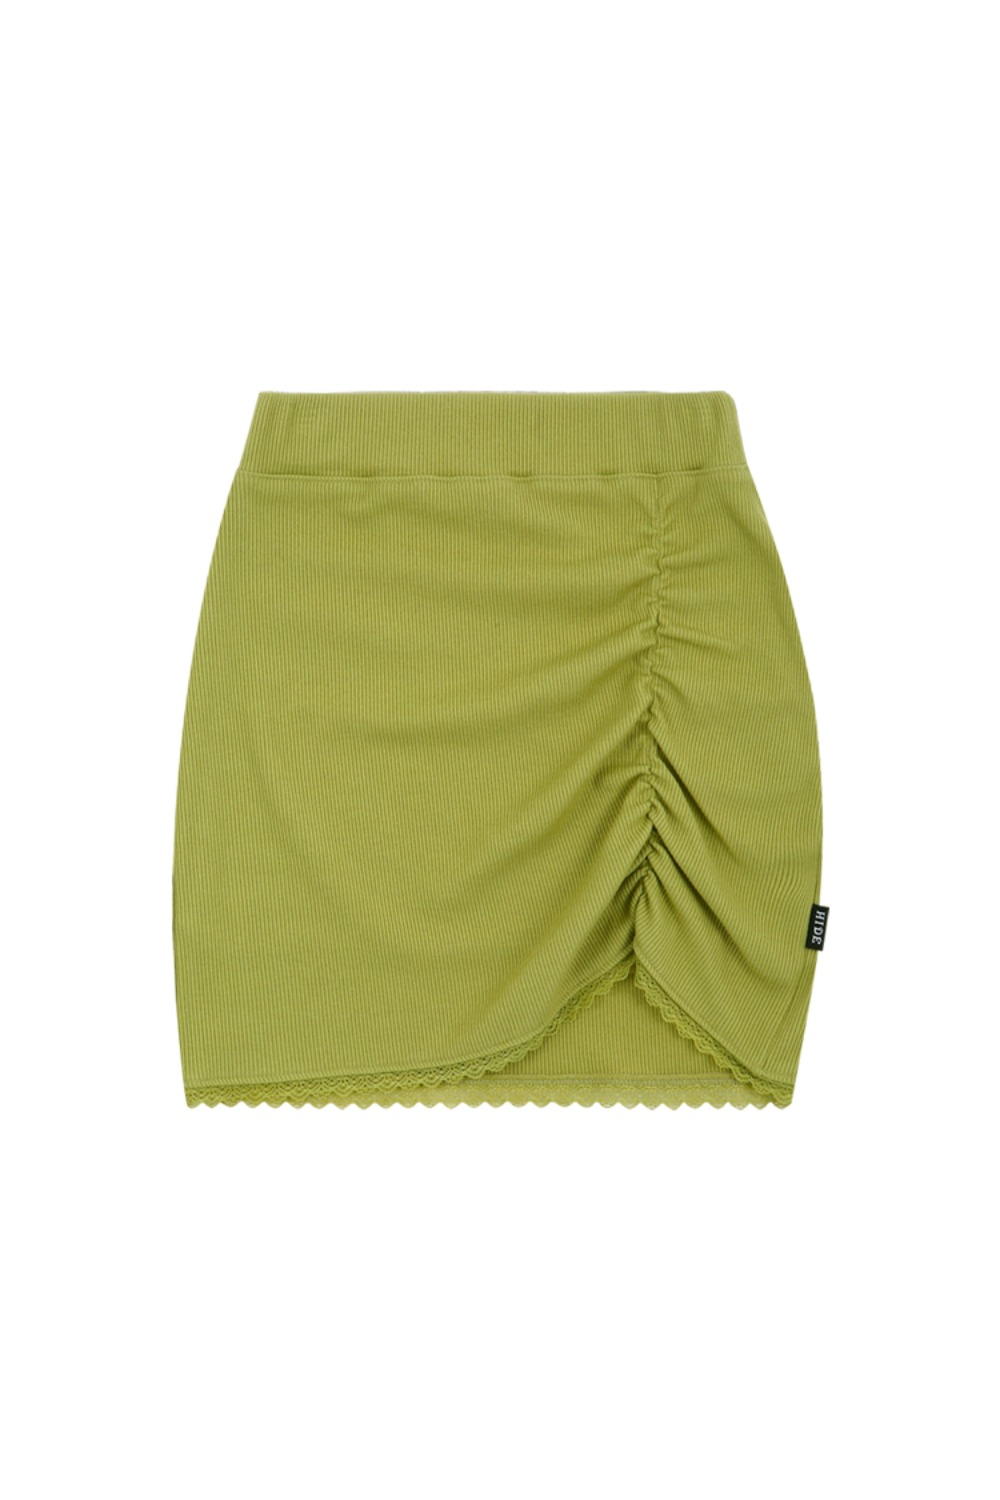 HIDE Lace Skirt OLIVE